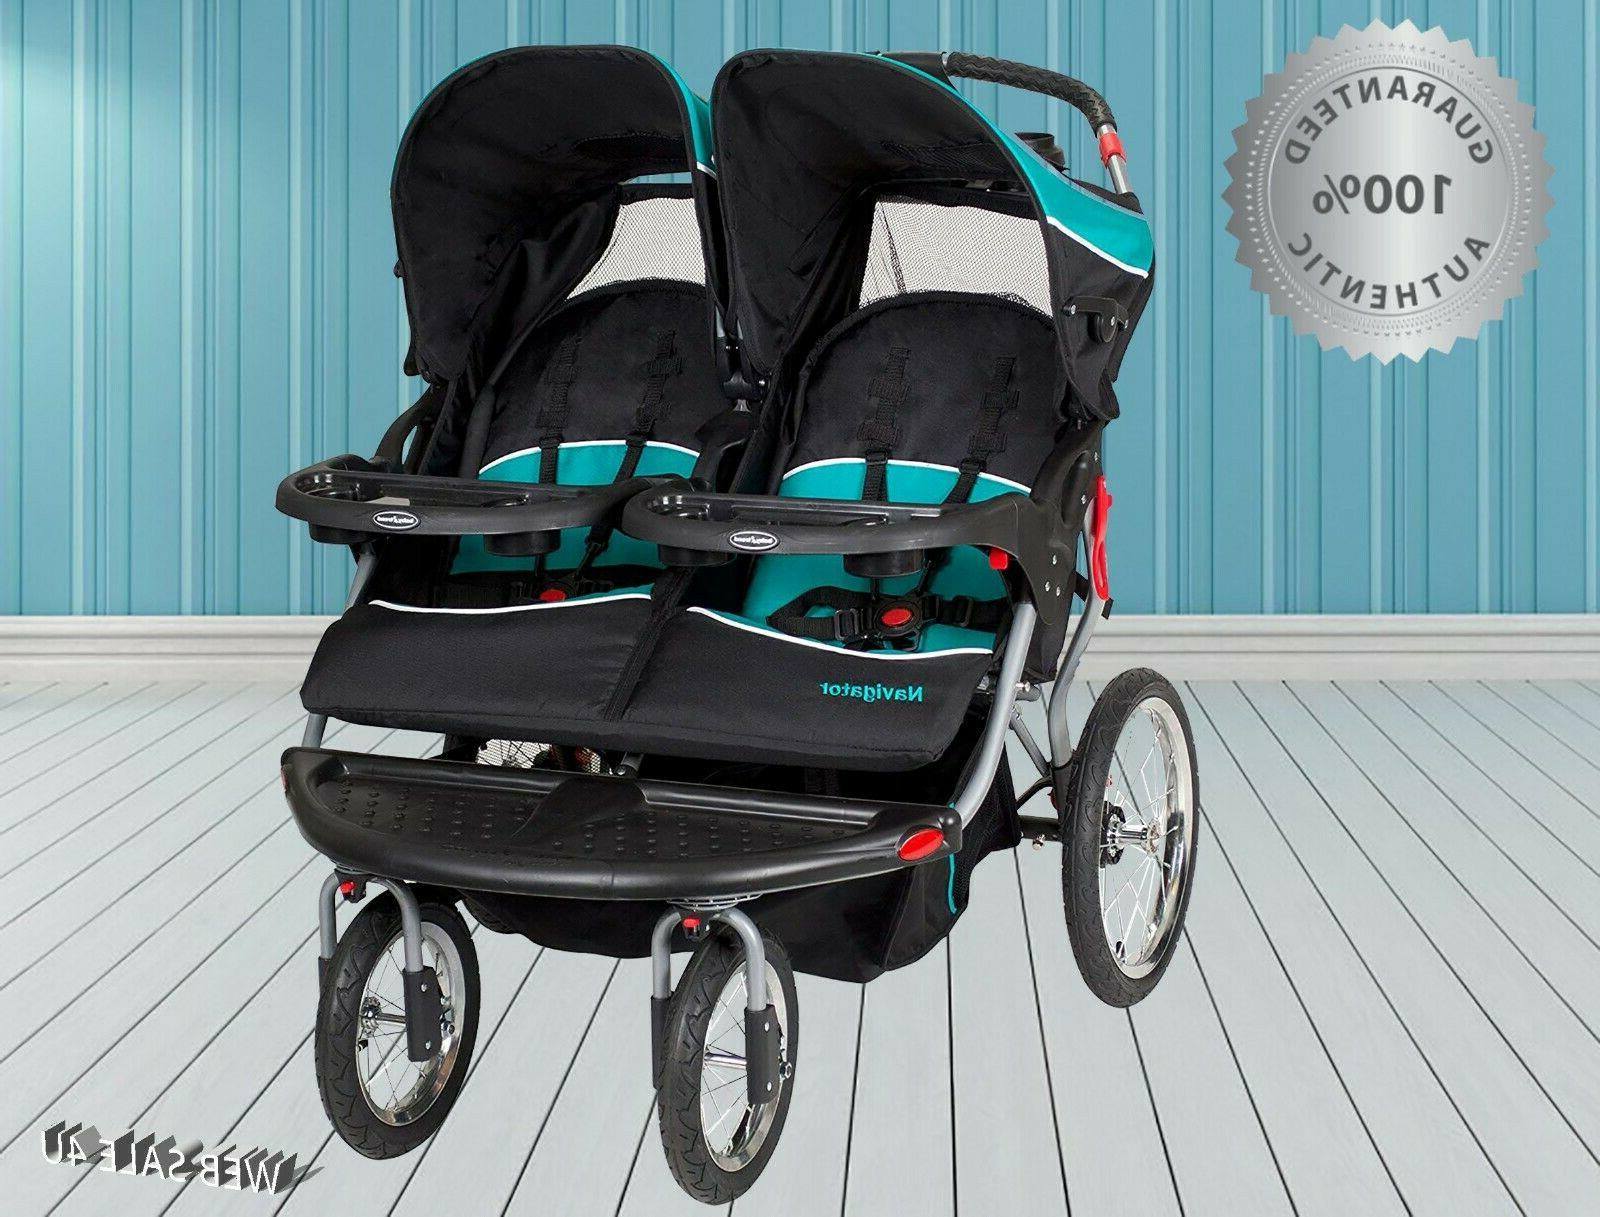 Luxury Double Baby Stroller Twins Jogger Push Kids Travel In